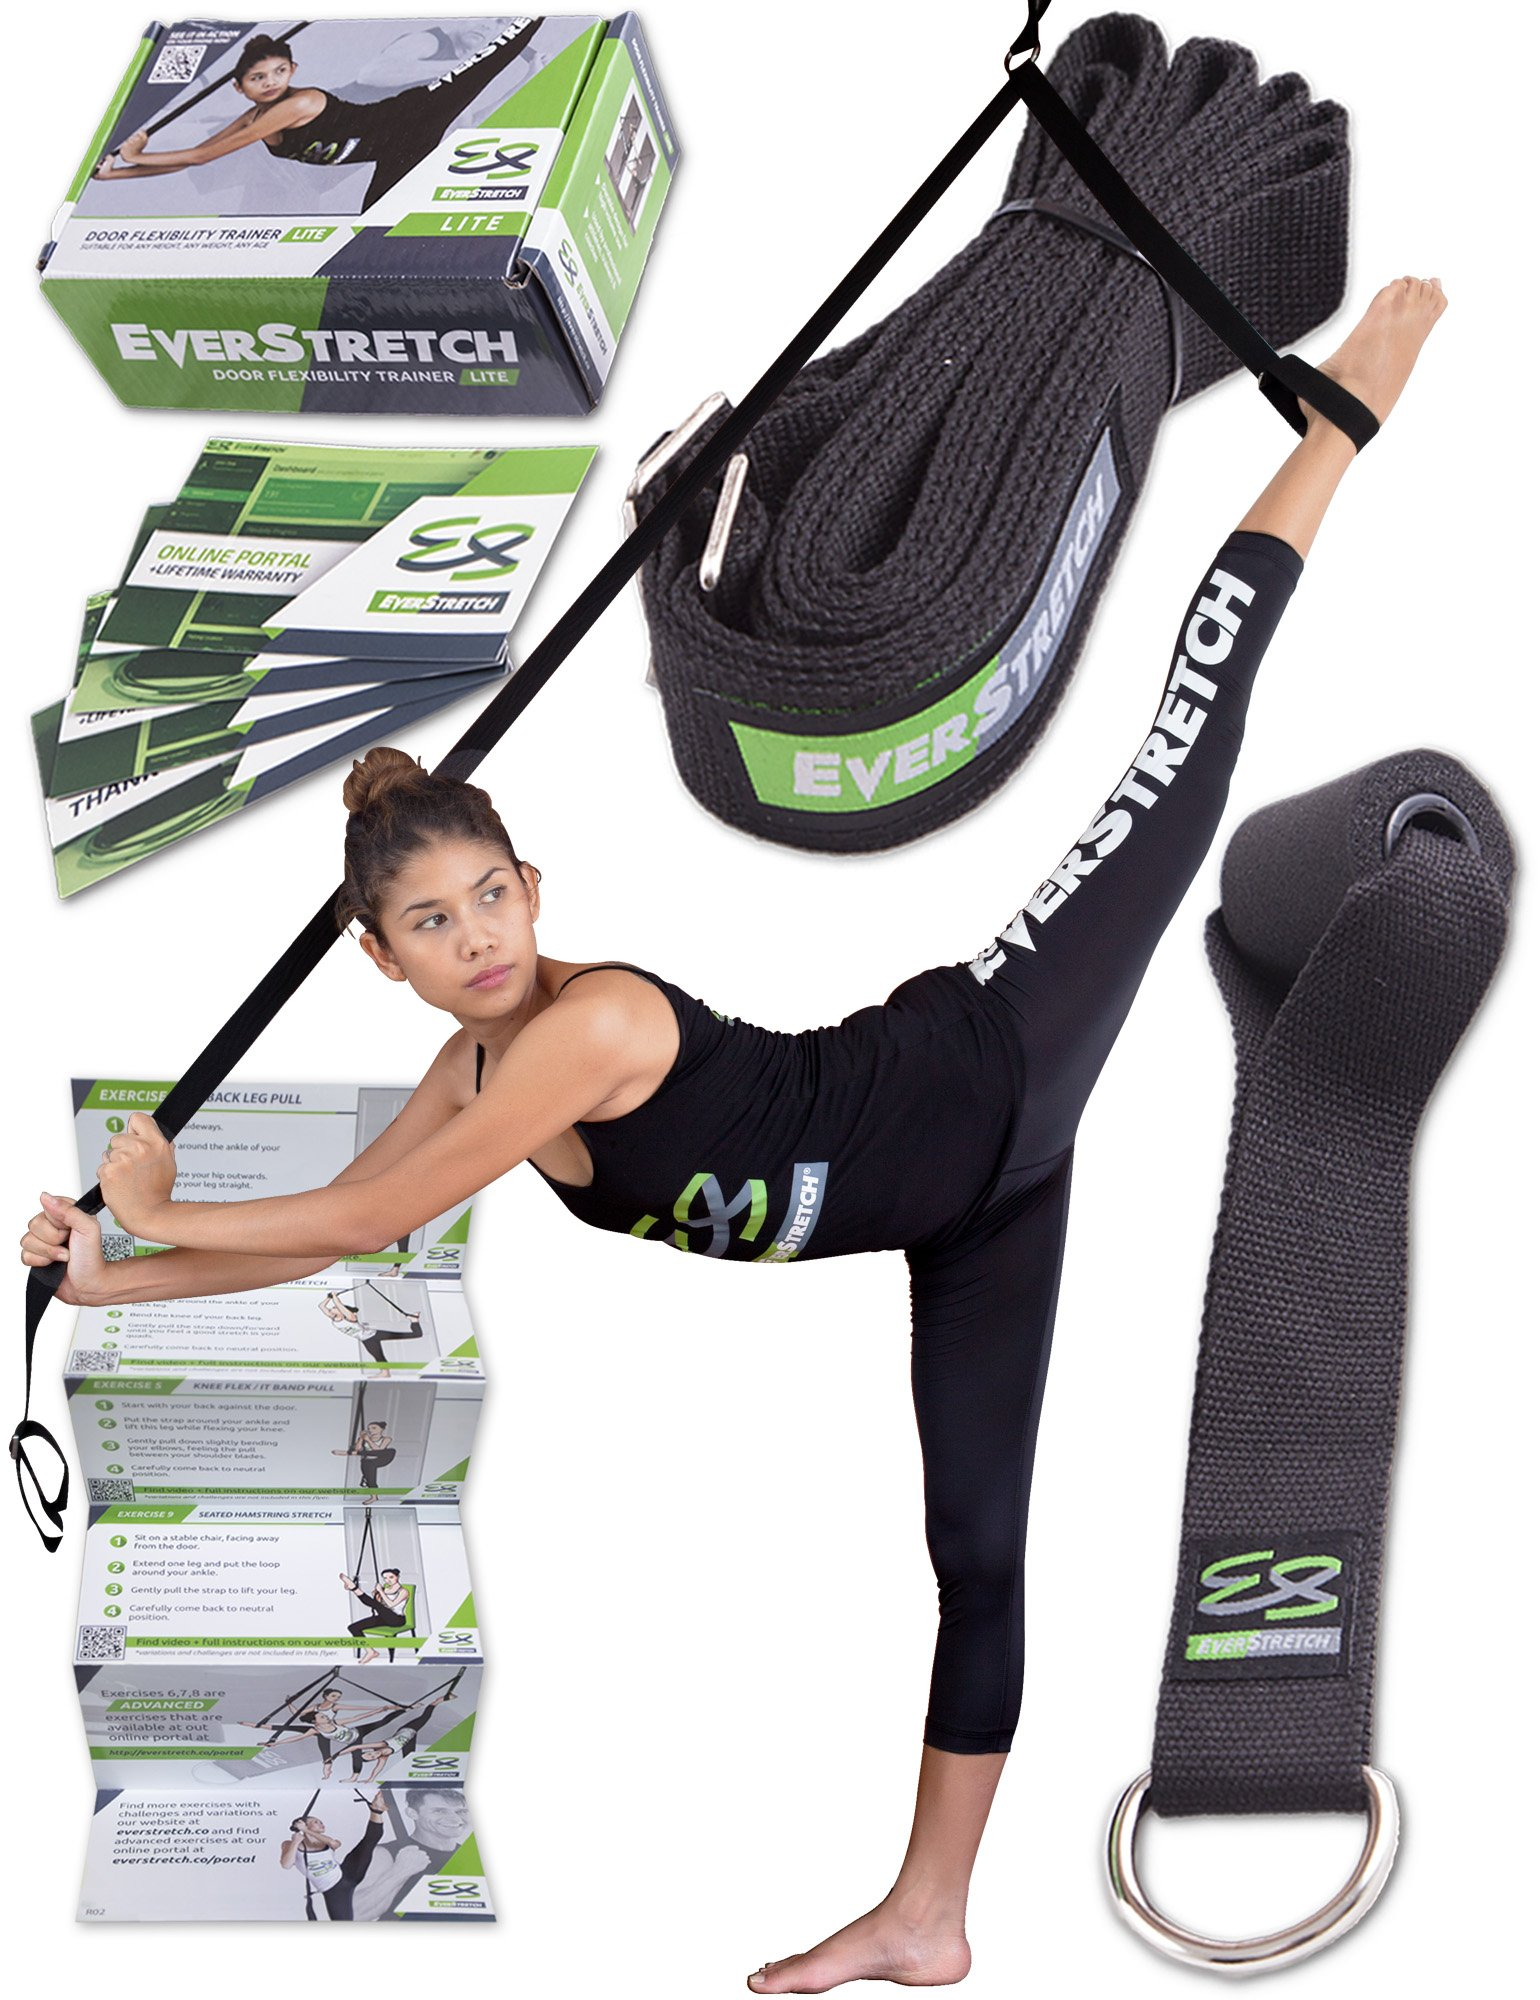 Leg Stretcher: Get More Flexible With The Door Flexibility Trainer LITE by EverStretch: Premium stretching equipment for ballet, dance, MMA, taekwondo & gymnastics. Your own portable stretch machine! by EverStretch